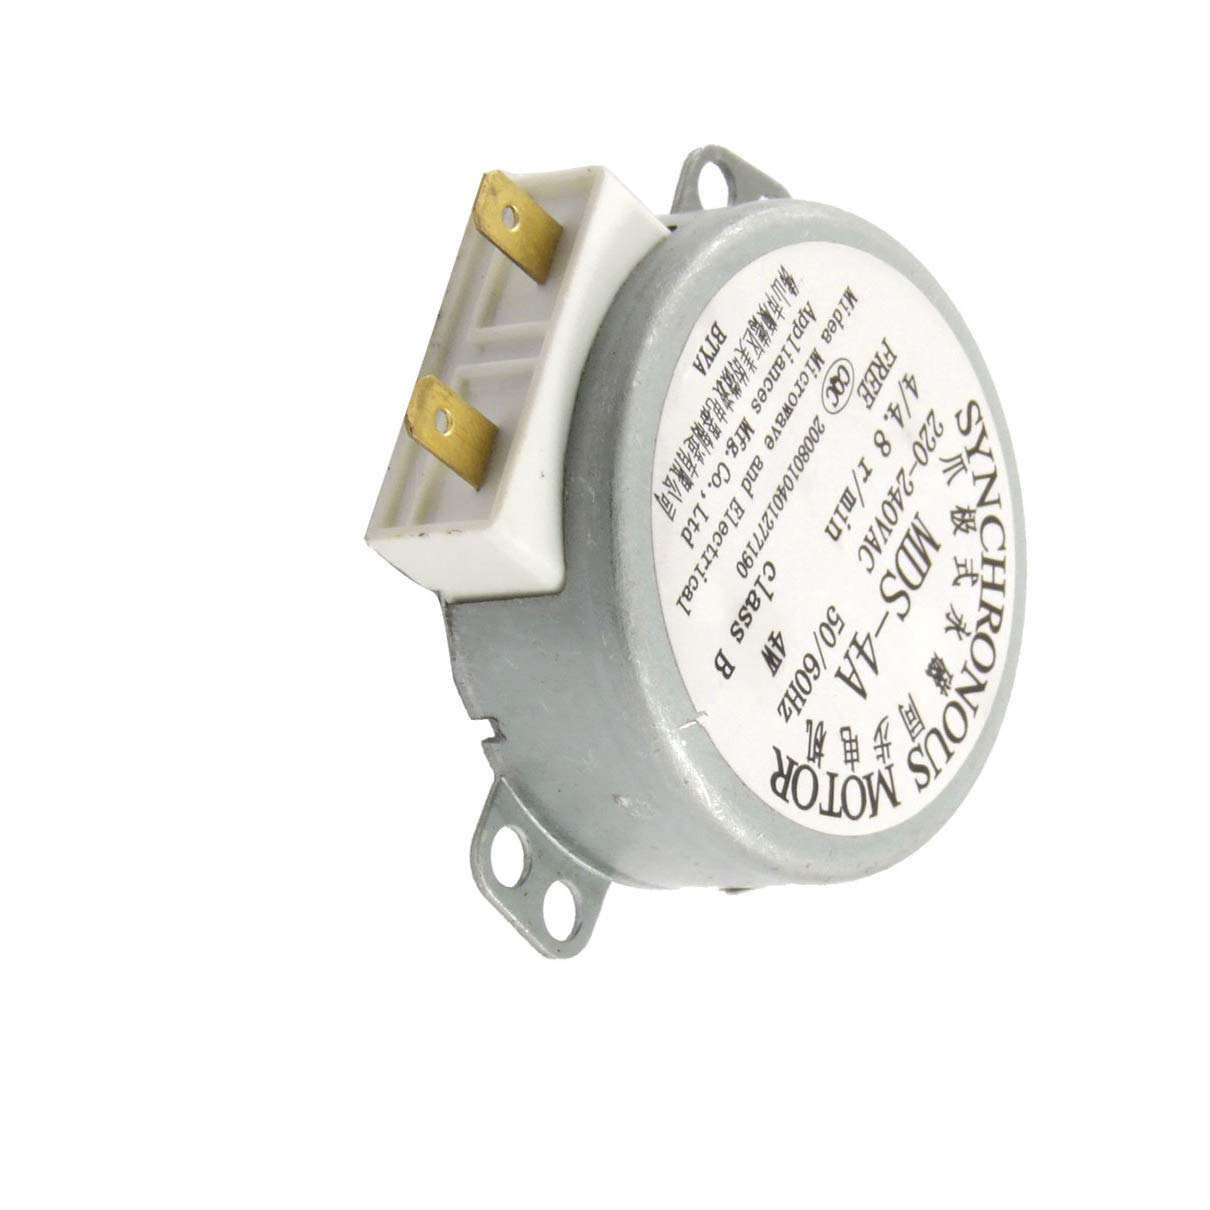 220V Microwave Oven Turntable Motor Synchronous Motor For Midea MDS-4A